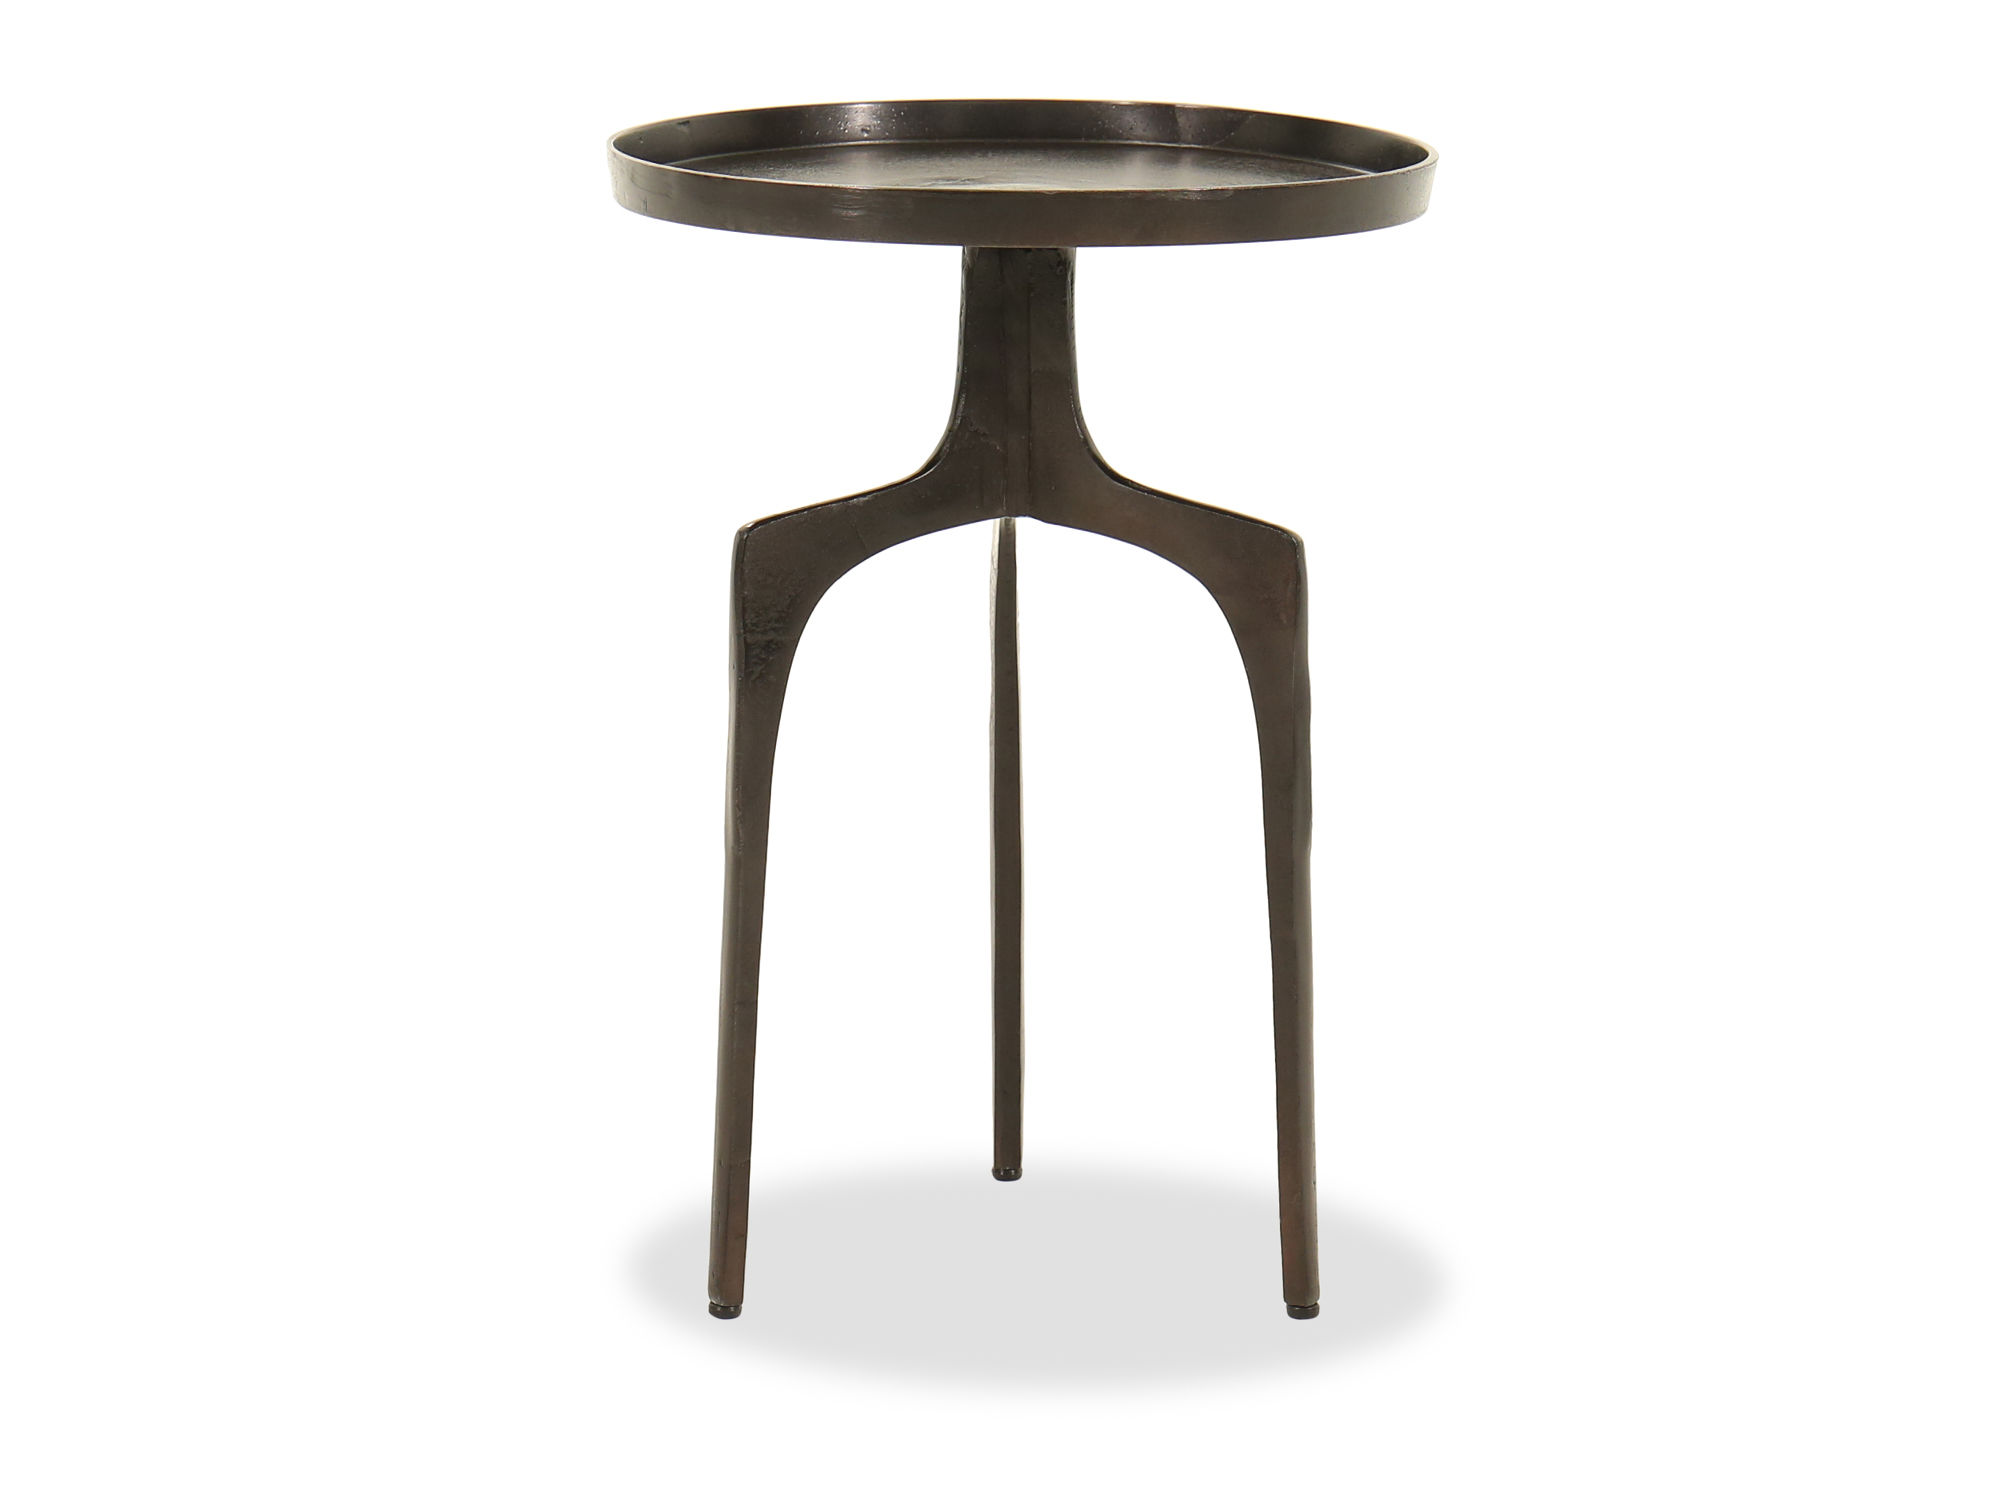 tripod base industrial accent table black mathis brothers furniture pul drum white and gold chair nesting end tables ethan allen italian coffee inch round tablecloths pine dining